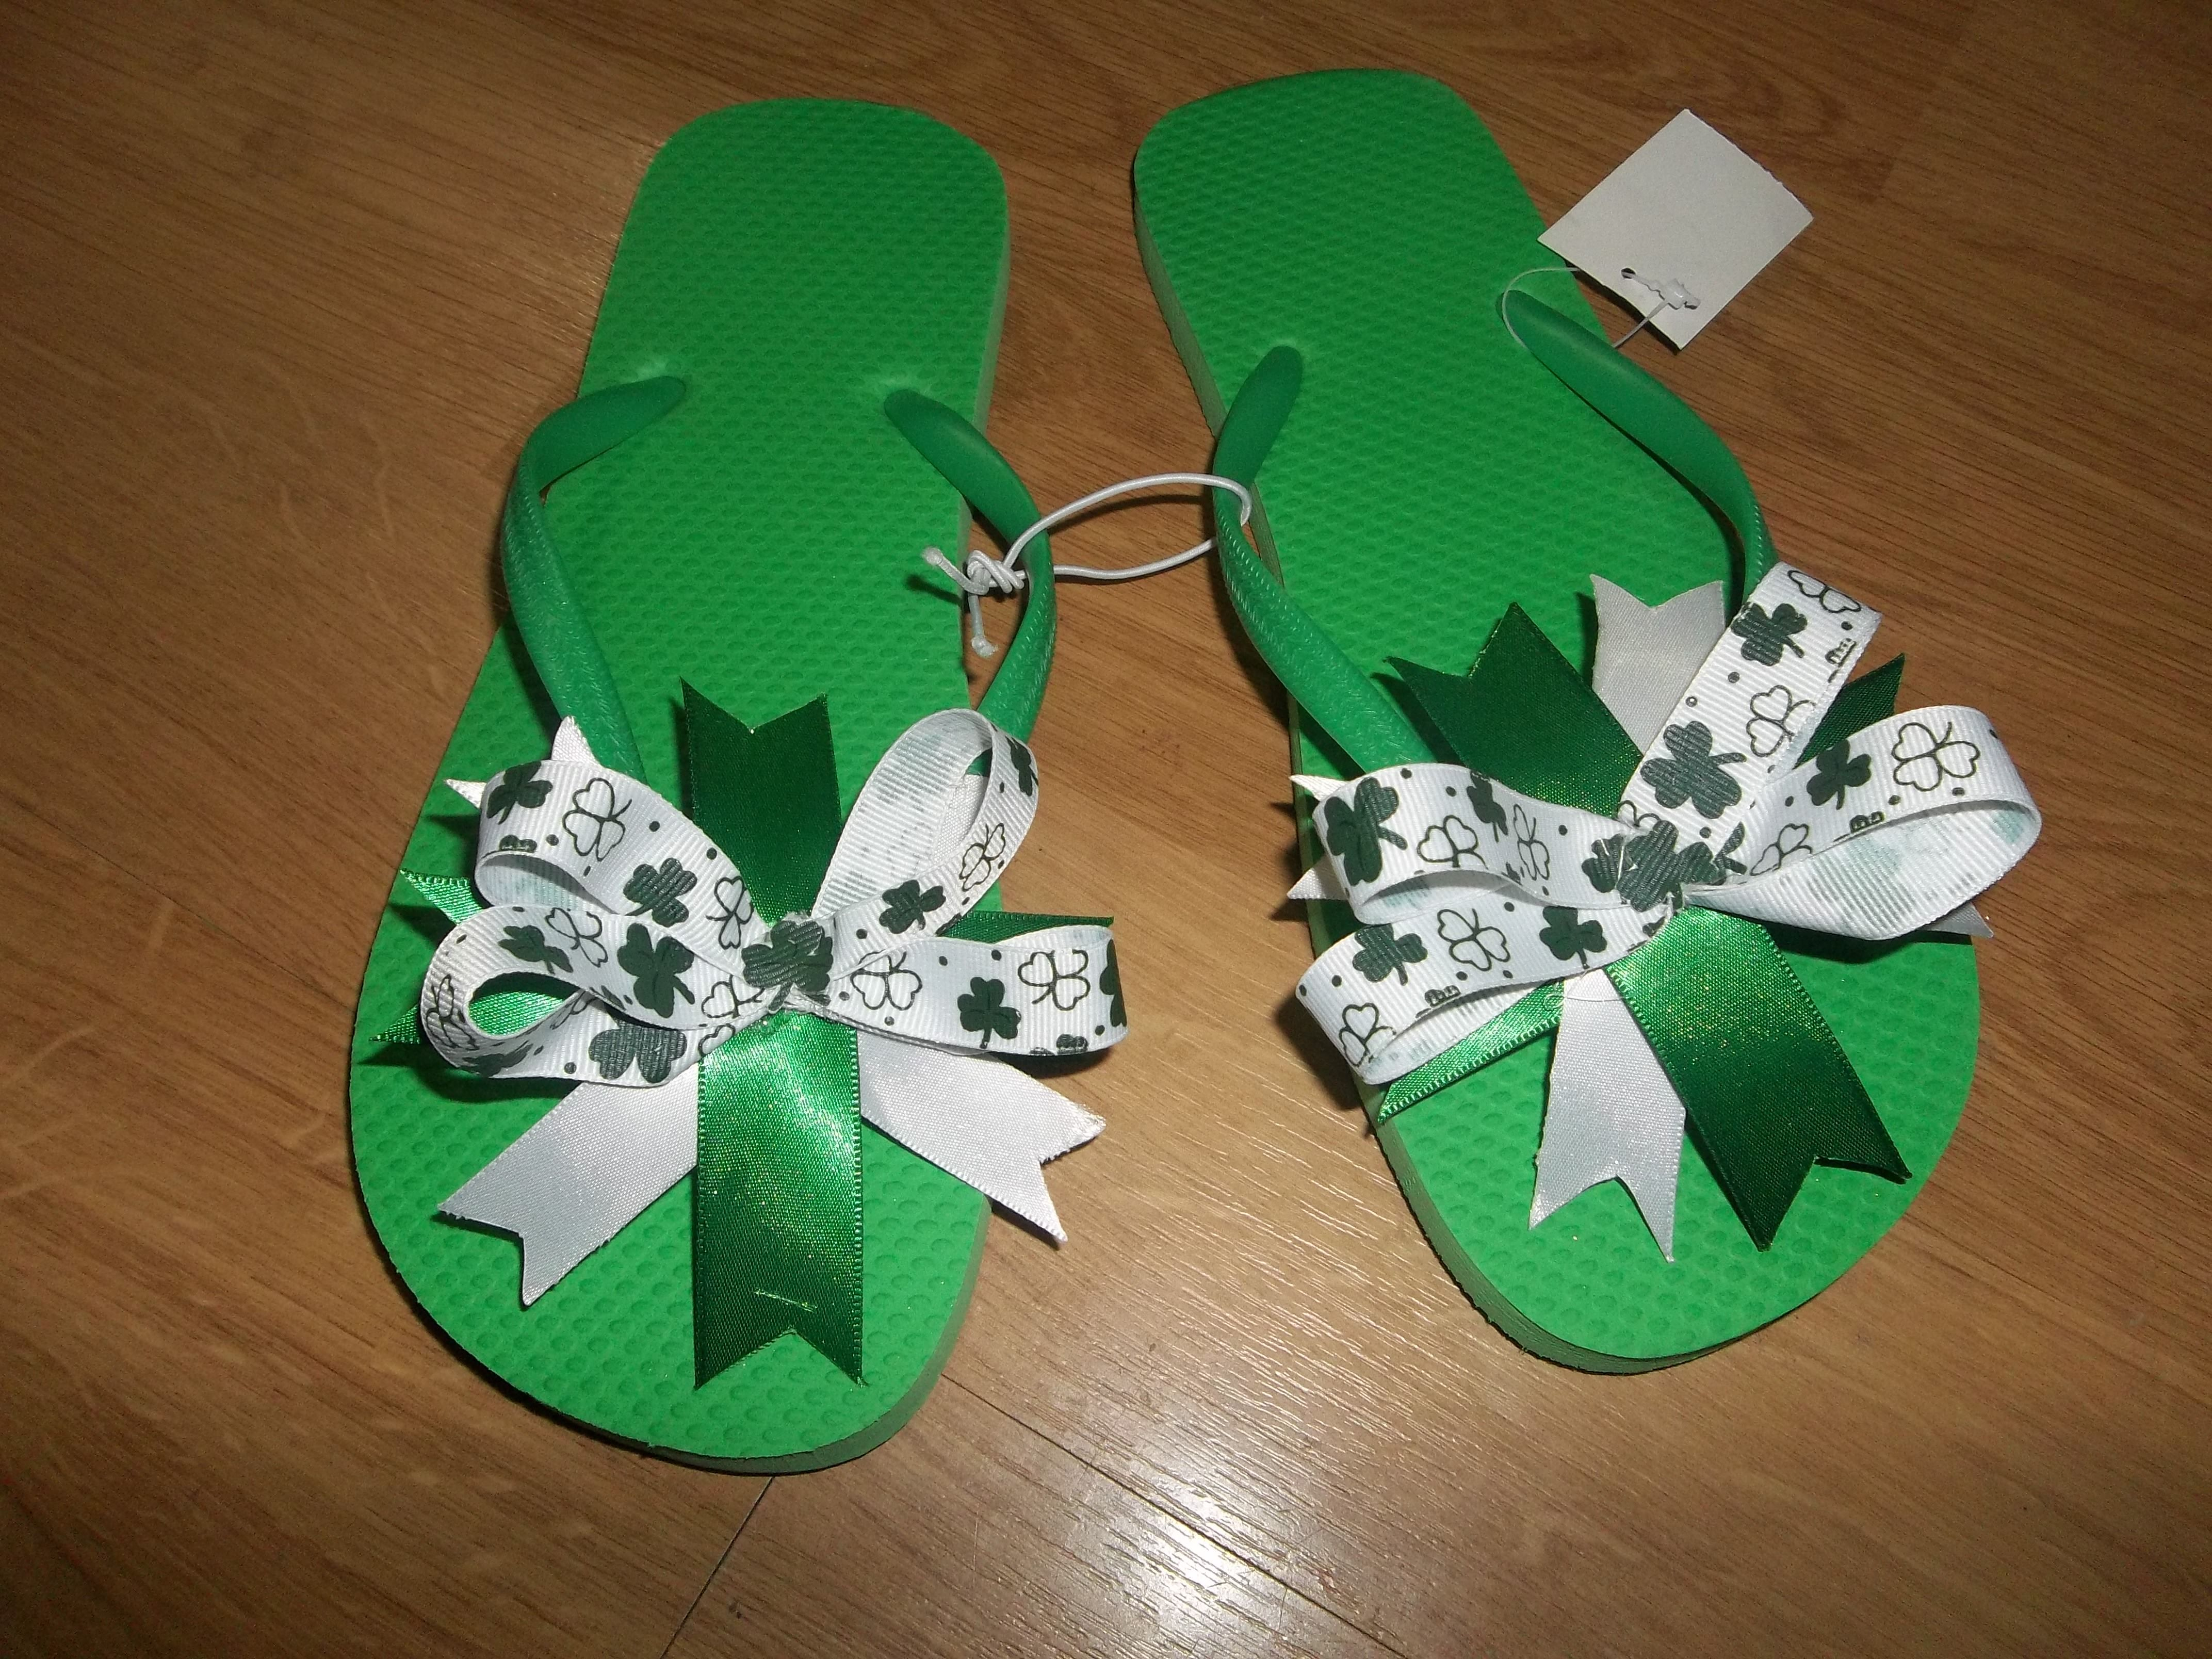 New!  Custom Order  School Spirit  White, Green, Shamrocks  I can even customize yours to match school colors :D  Order yours today: $8+shipping